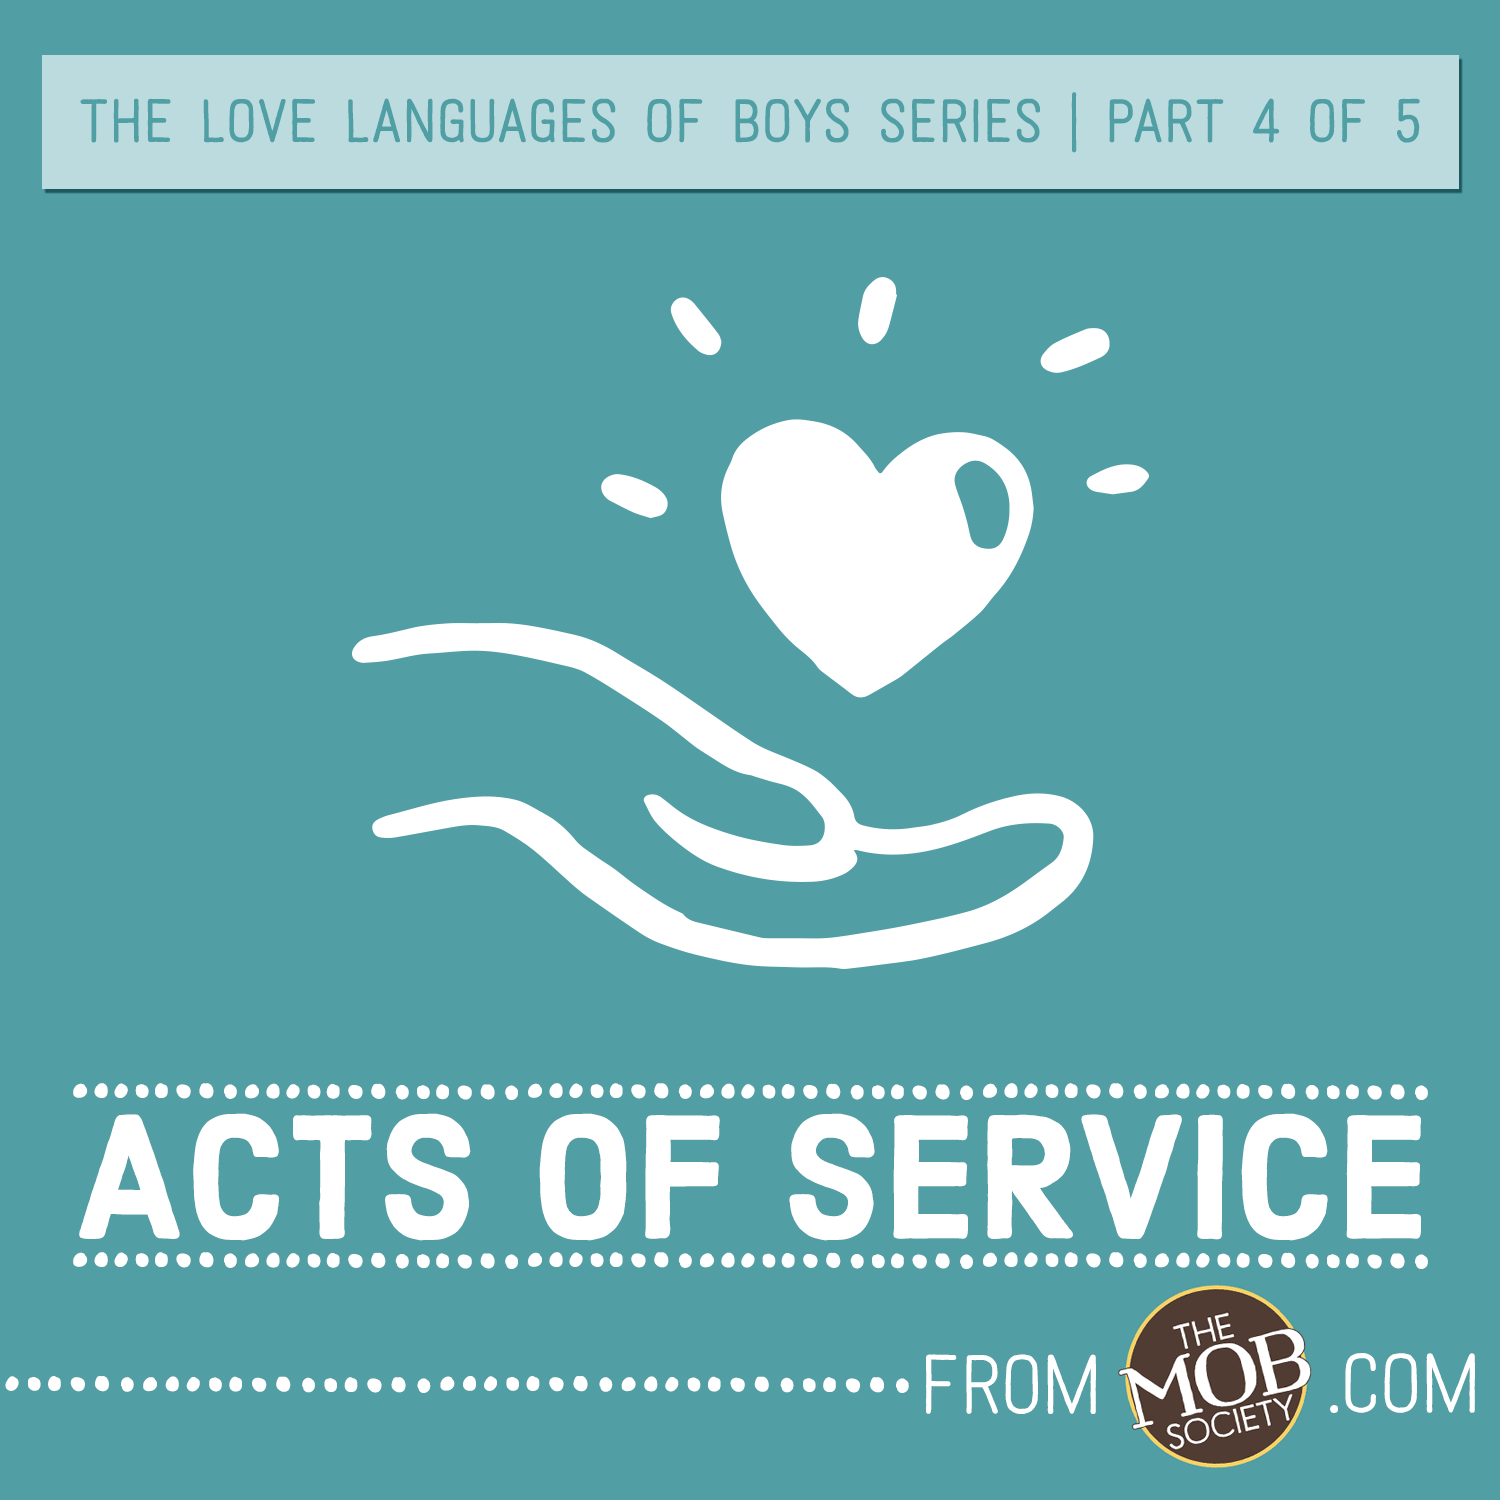 The Five Love Languages Of Boys Acts Of Service